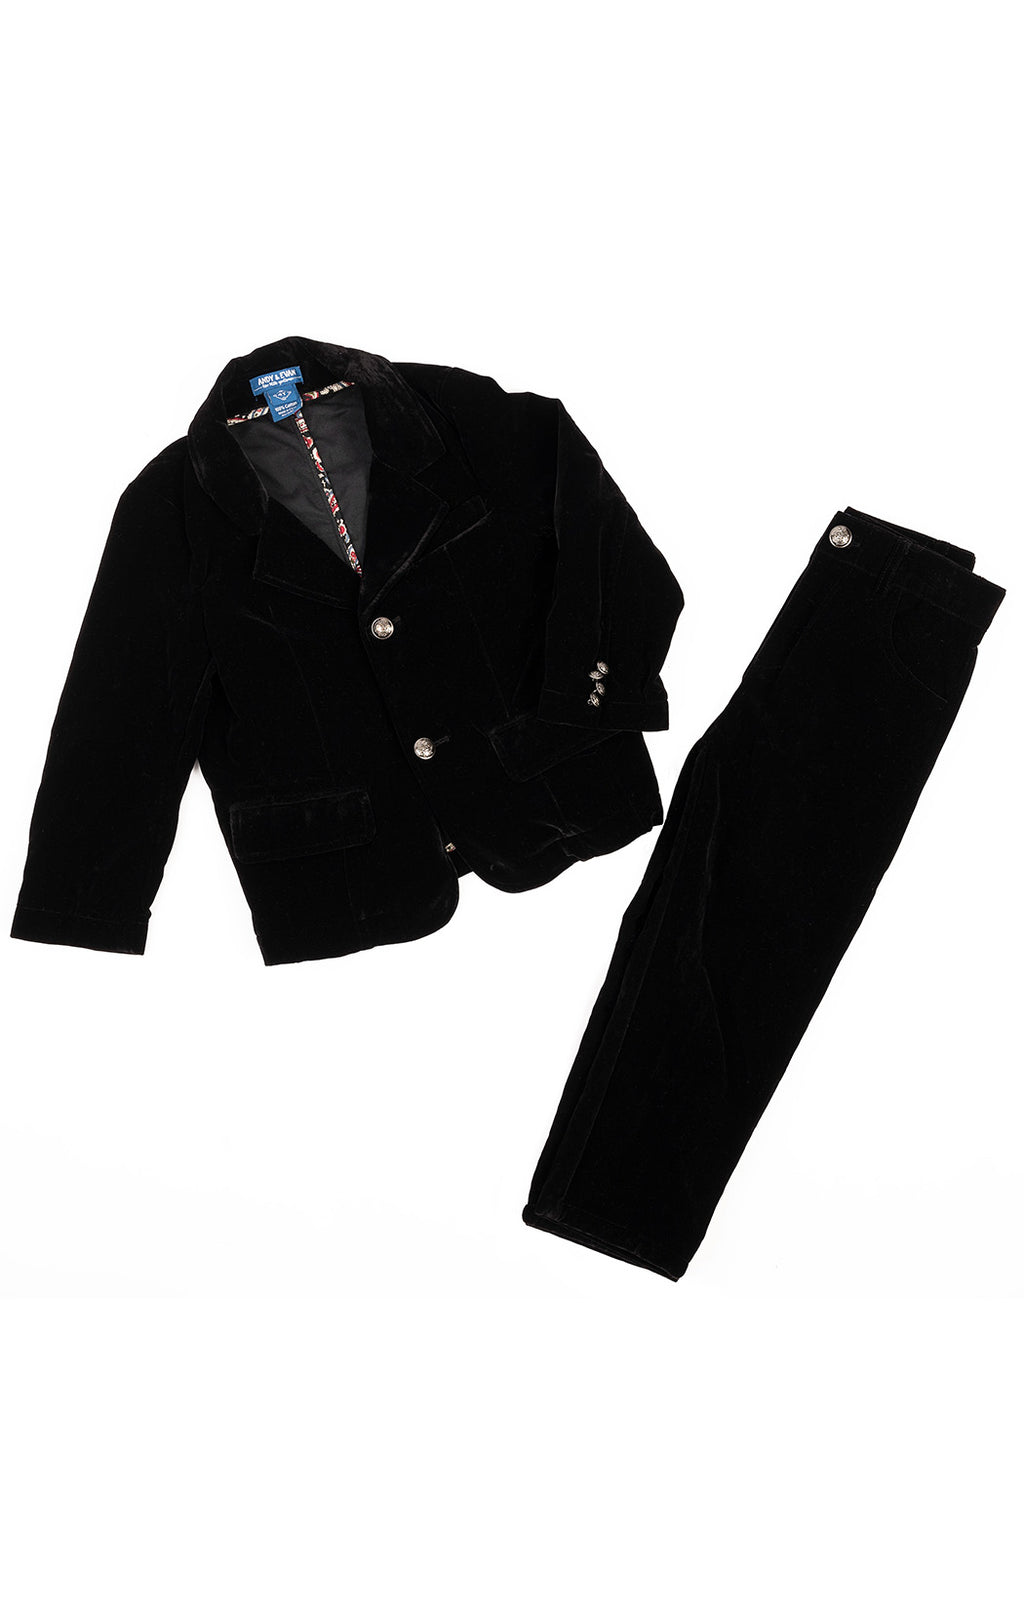 ANDY & EVAN Suit Size: 4 T